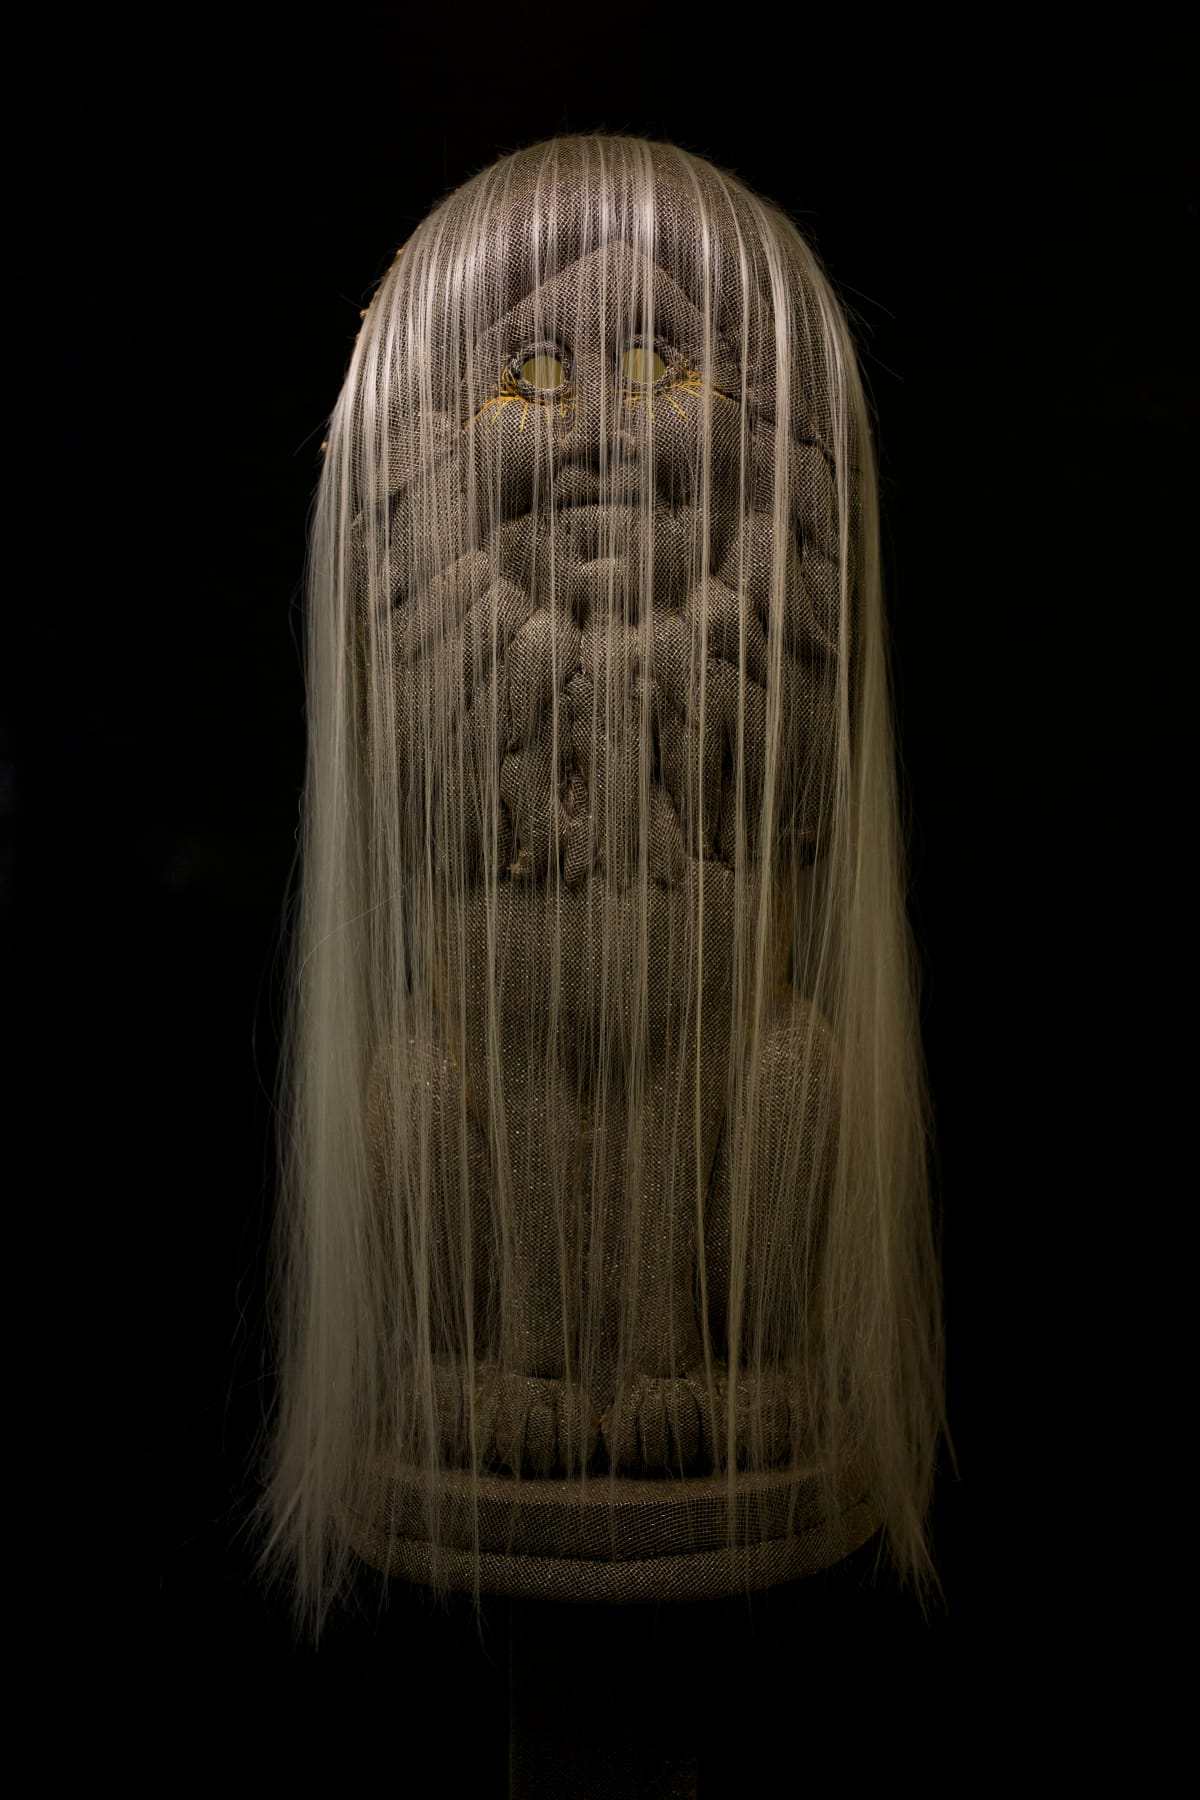 Tarryn Gill Guardian (The Lion), 2019 mixed media including EPE Foam, hand-sewn fabrics, synthetic hair, mirrors, trimming Object: 53 x 23 x 22 cm Plinth: 126 x 34 x 34 cm Overall Hight: 179cm